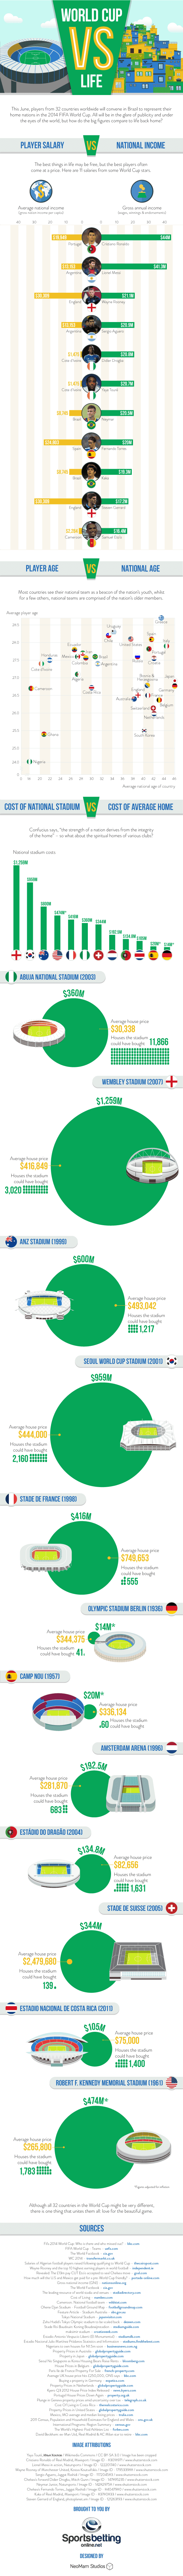 World Cup Vs Life Infographic